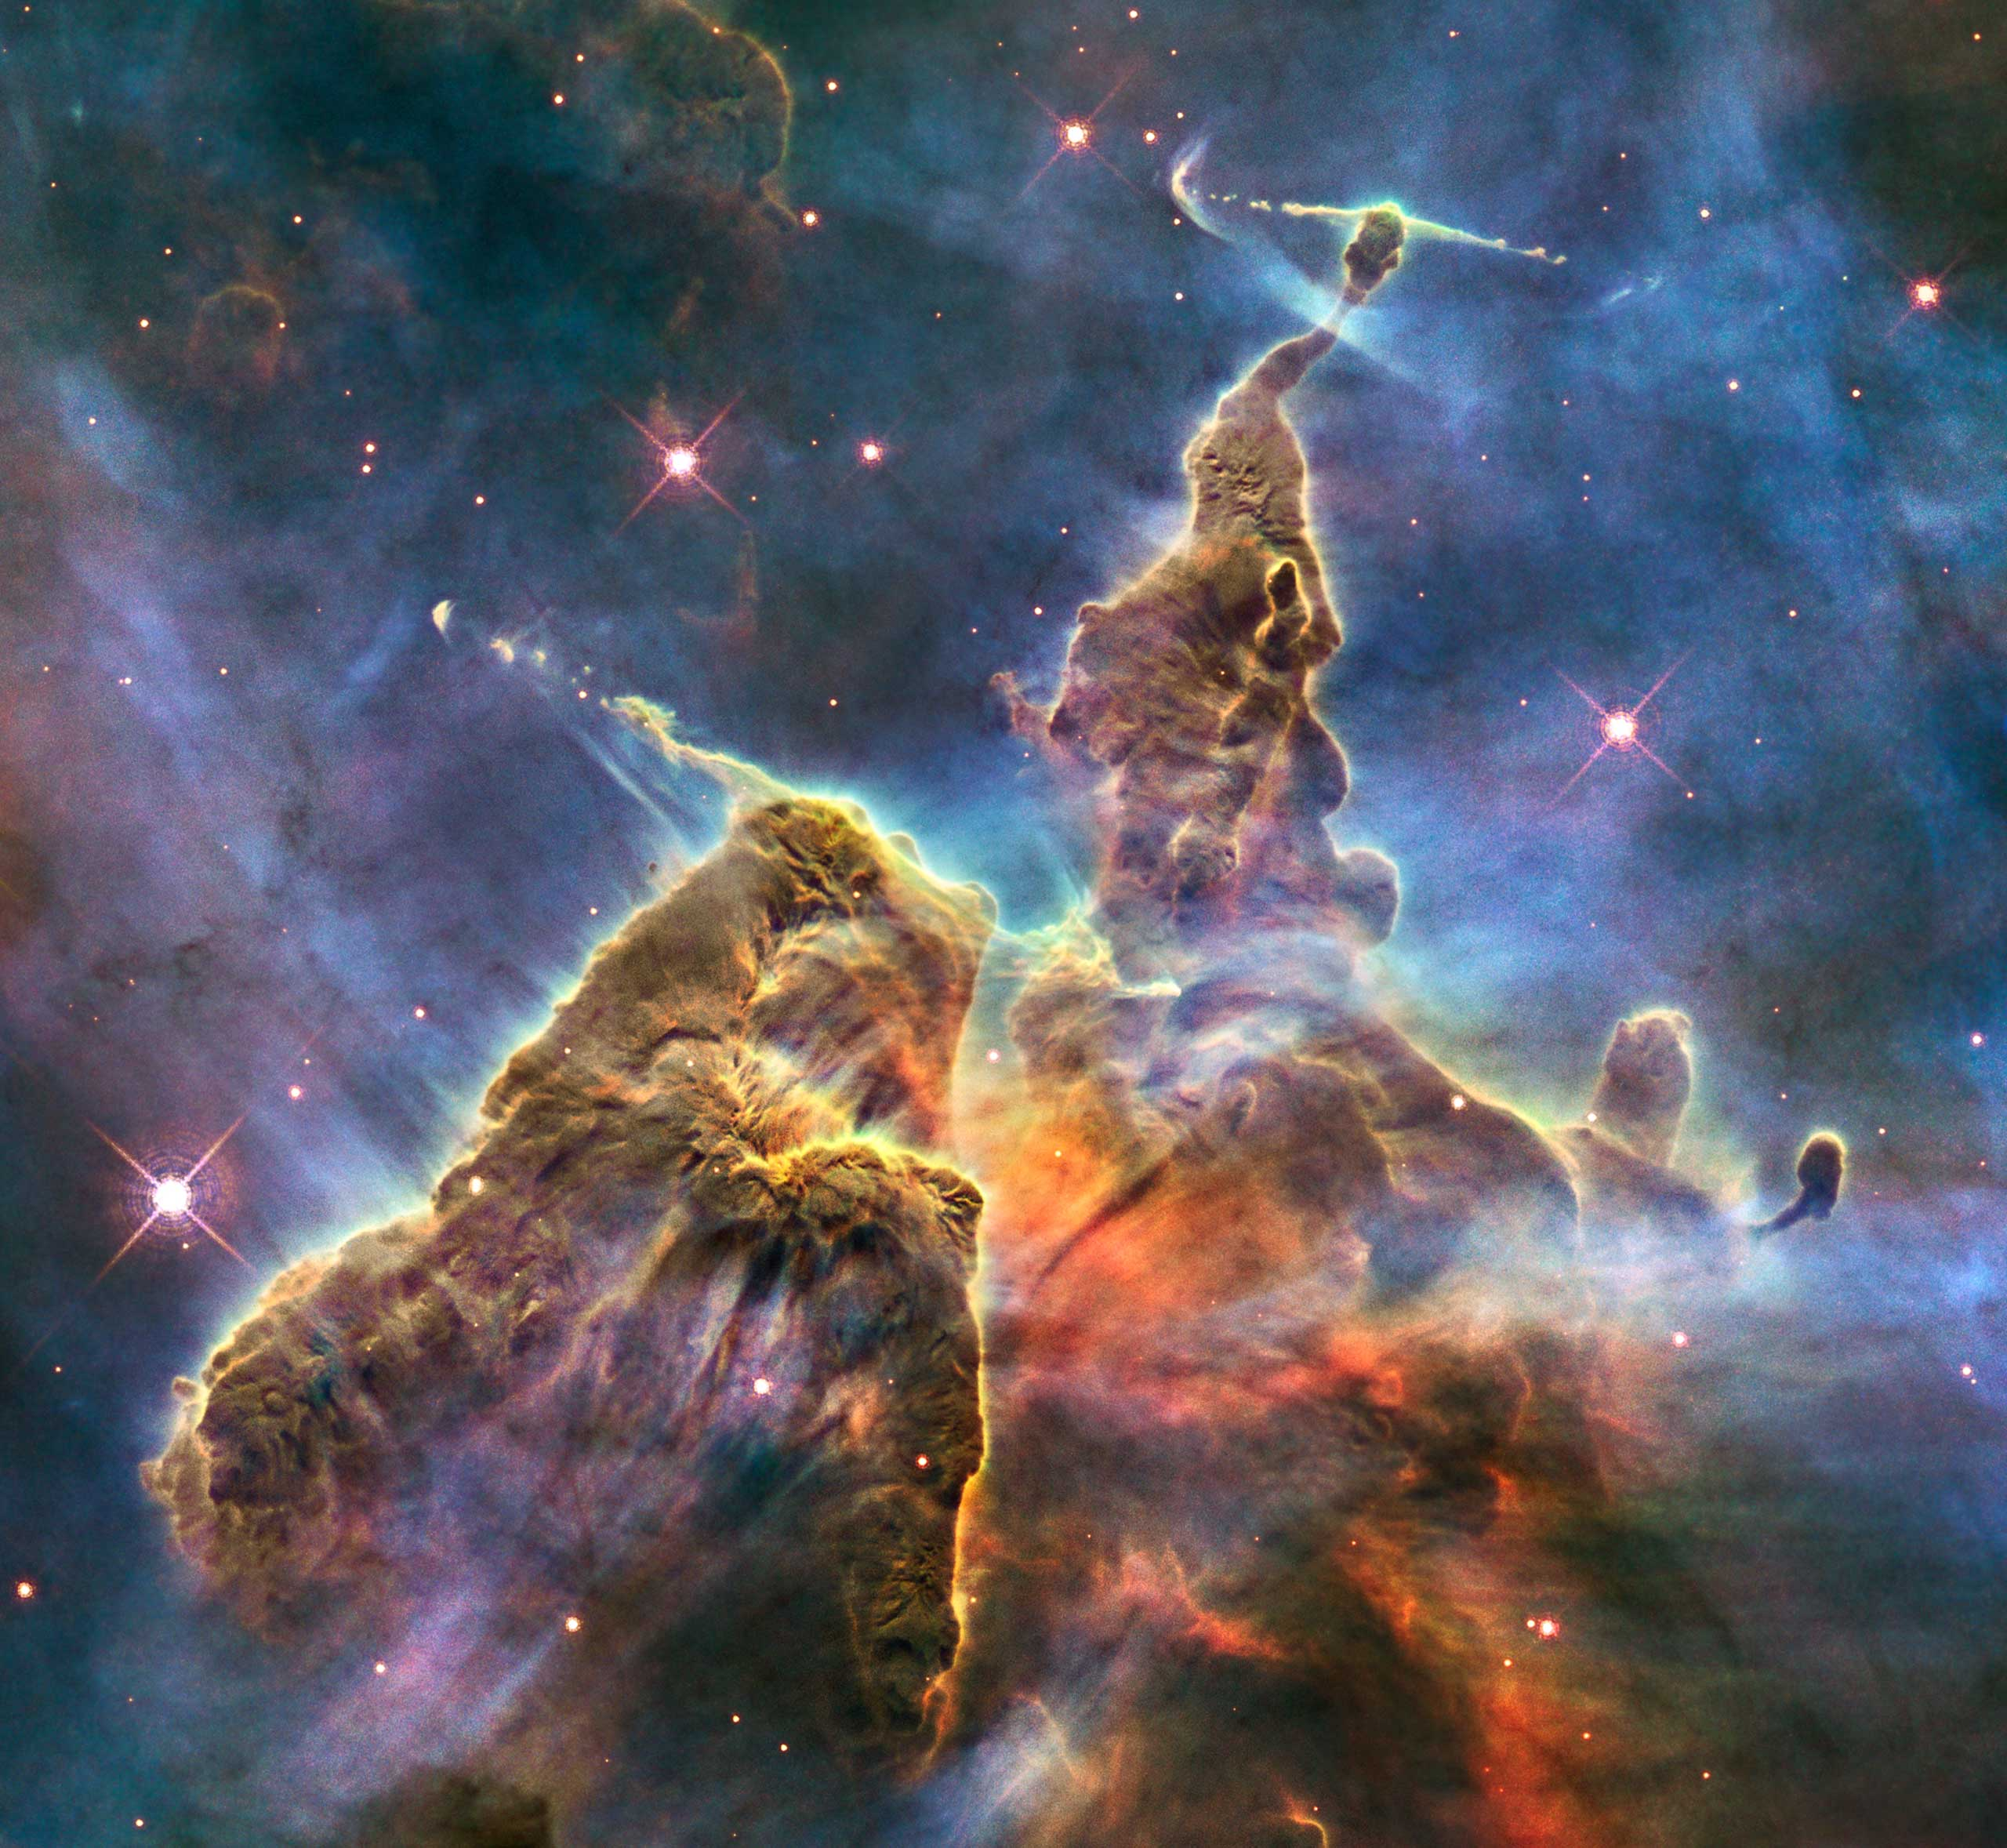 <strong>Mystic Mountain</strong>:                                                                      This image captures the chaotic activity atop a three-light-year-tall pillar of gas and dust that is being eaten away by the brilliant light from nearby bright stars. The pillar is also being assaulted from within, as infant stars buried inside it fire off jets of gas that can be seen streaming from towering peaks. This turbulent cosmic pinnacle lies within the Carina Nebula, located 7,500 light-years away in the southern constellation Carina.                                                                       <i>Image released on April 22, 2010</i>